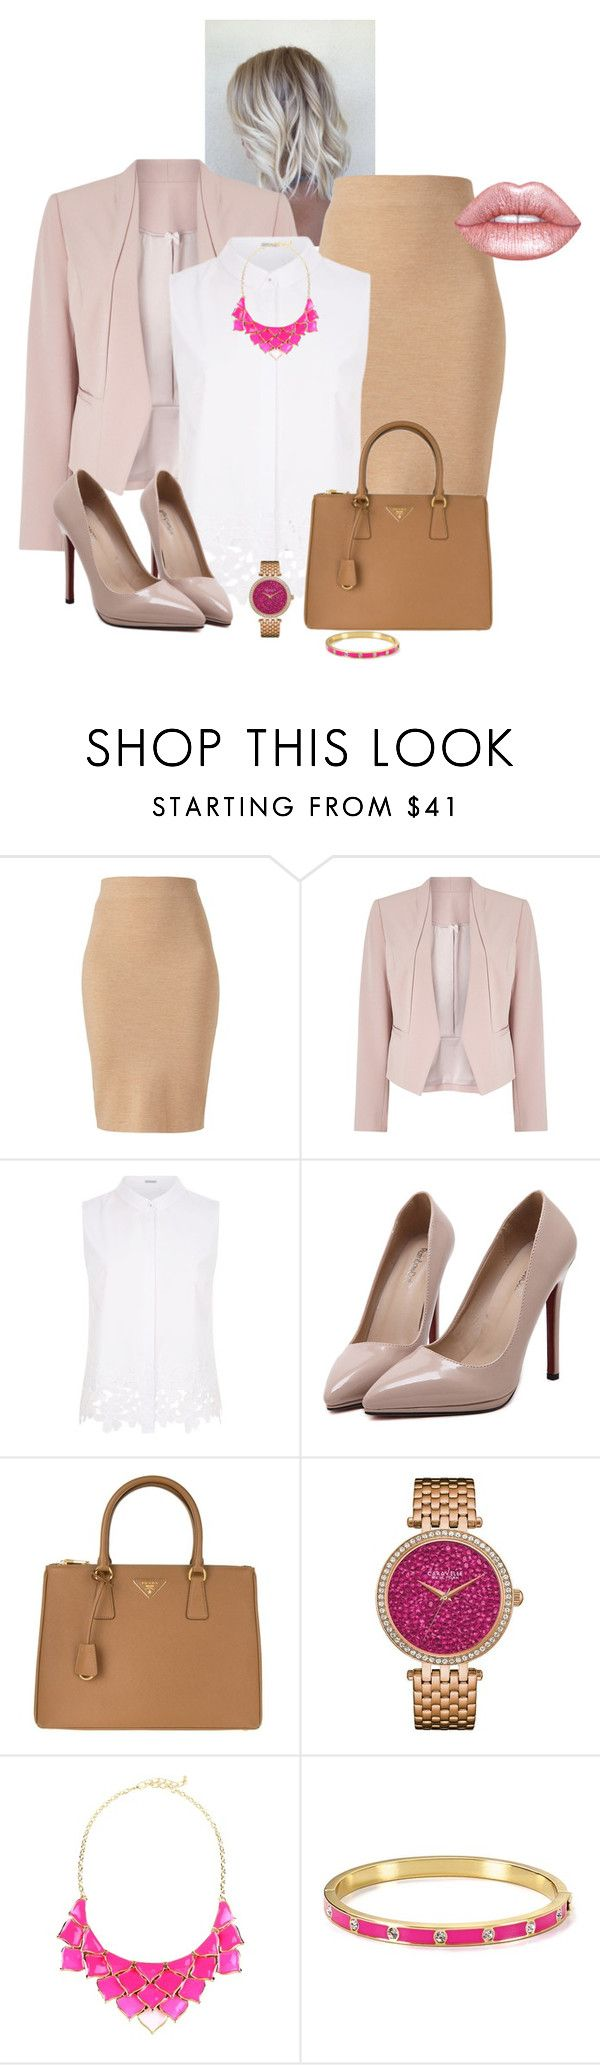 """""""trabalho"""" by daianetavares310 ❤ liked on Polyvore featuring Winser London, Jacques Vert, Elie Tahari, WithChic, Prada, Caravelle by Bulova, George J. Love, Kate Spade and Lime Crime"""